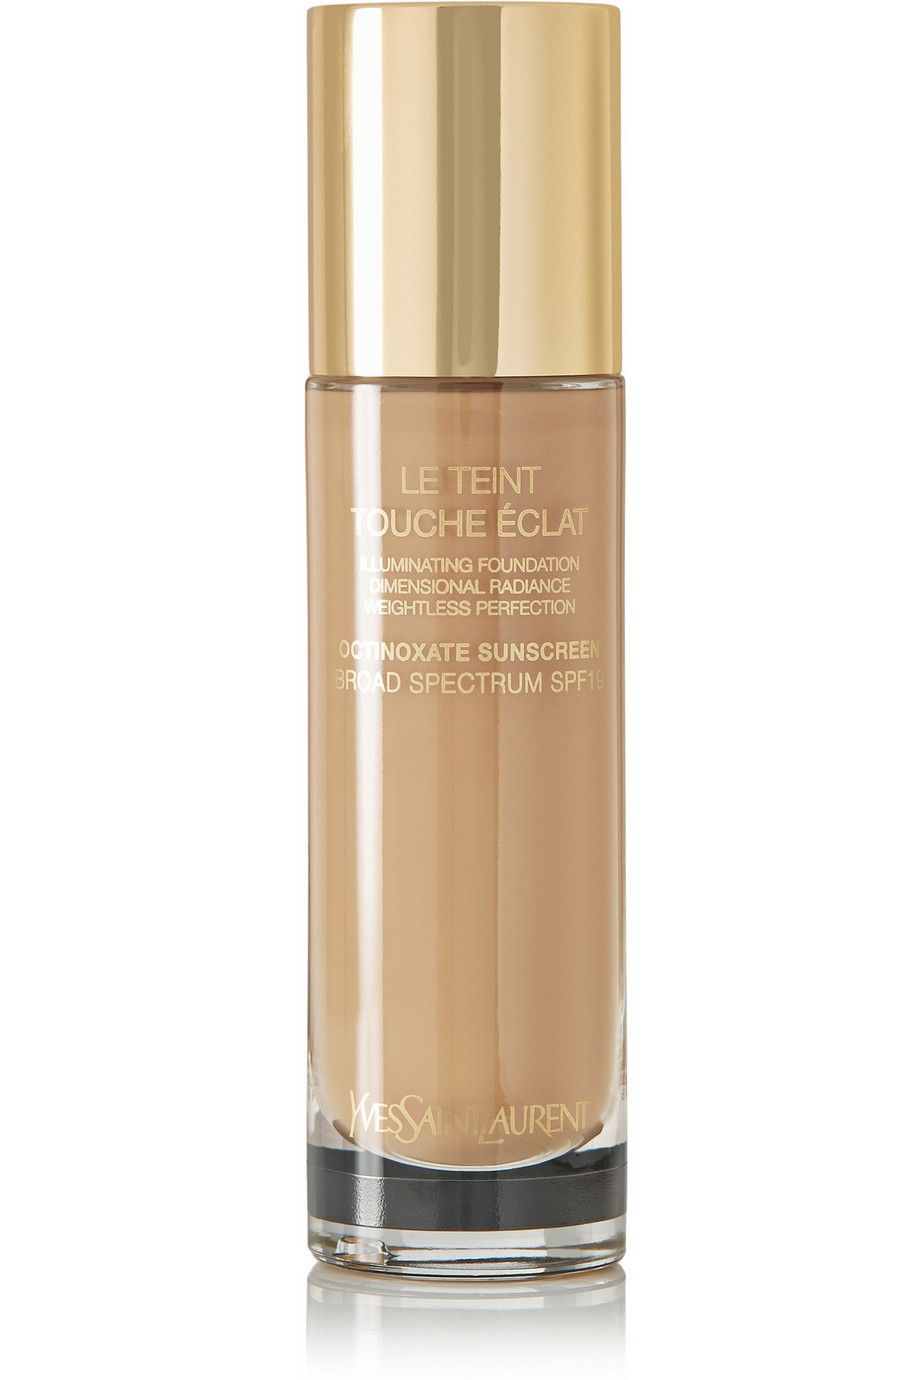 Le Teint Touche Éclat Illuminating Foundation - Beige 60, 30ml, by Yves Saint Laurent Beauty